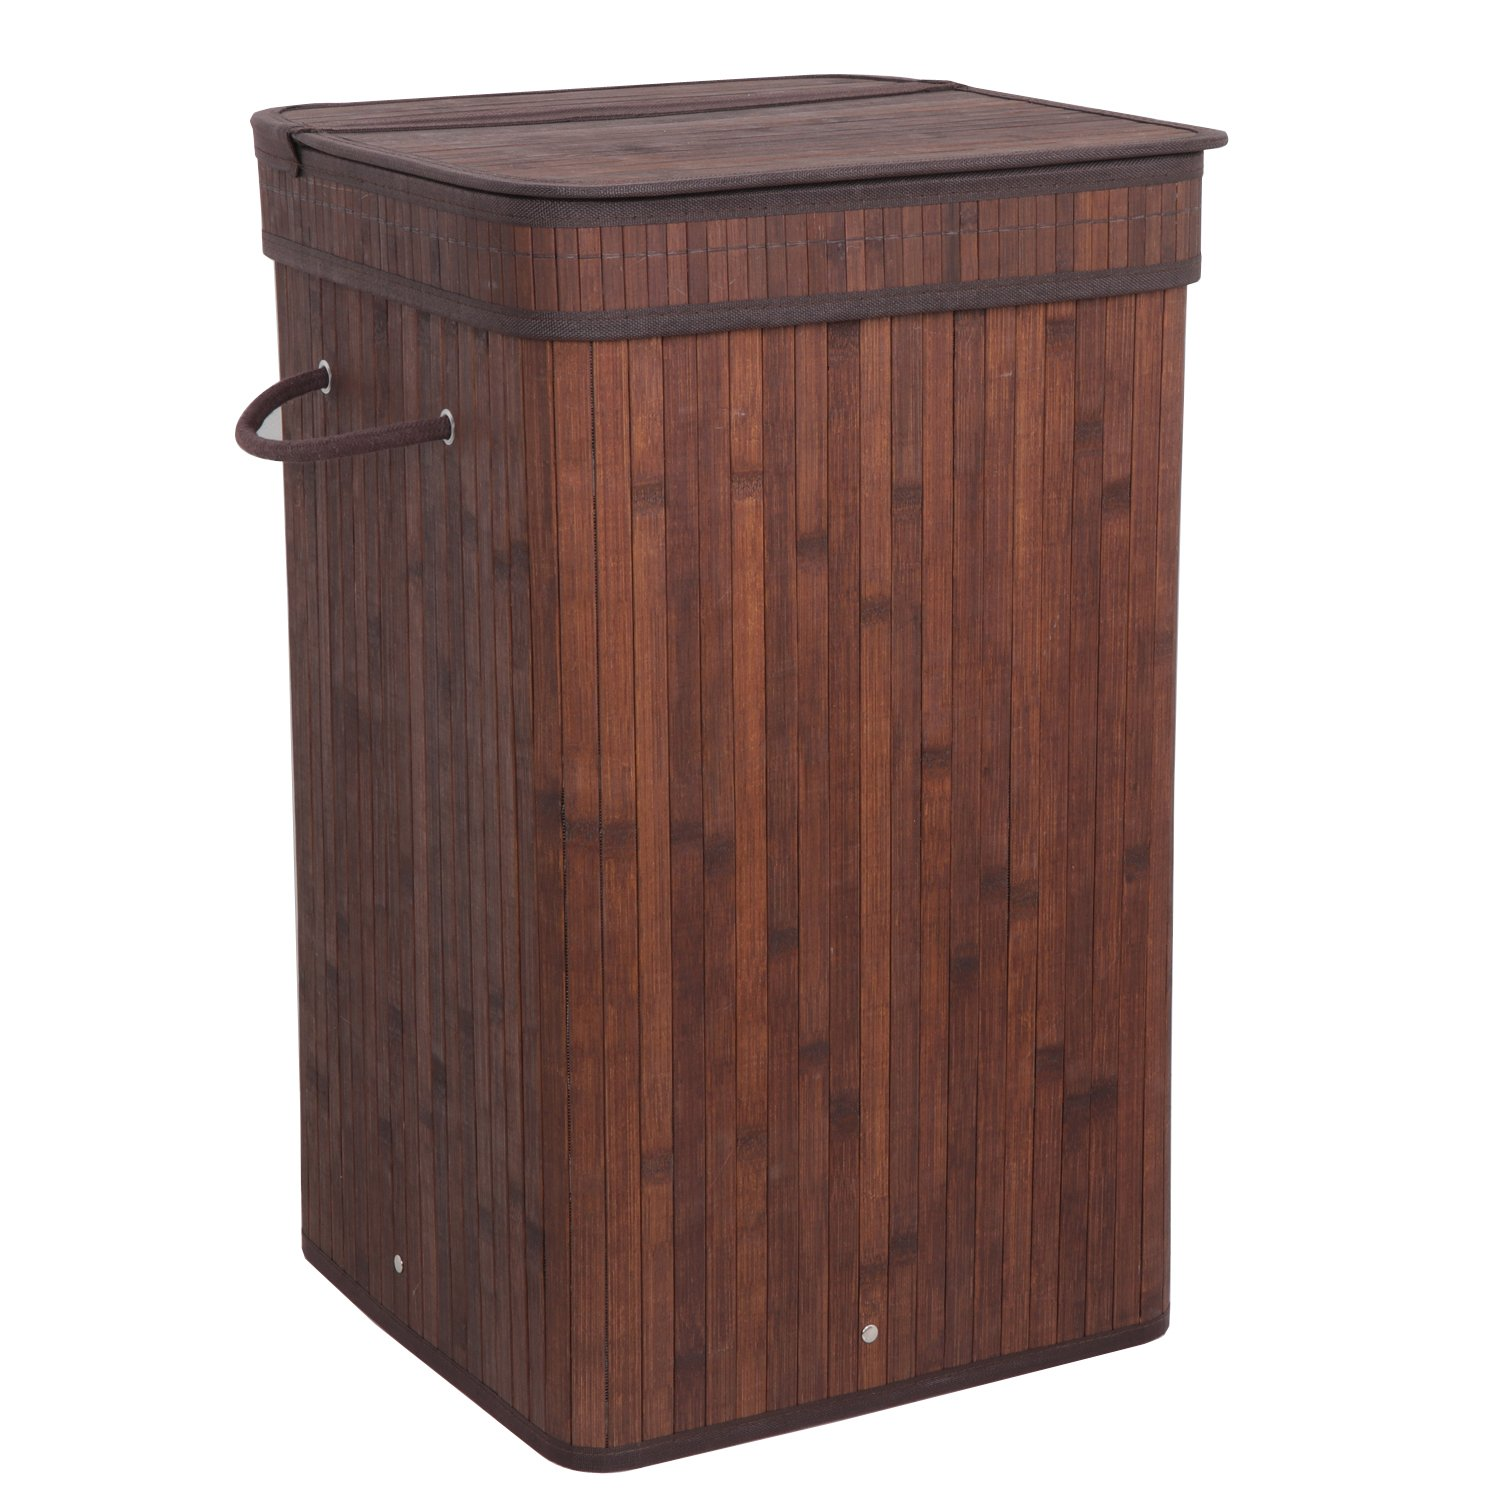 ZENY Square Laundry Hamper with Lid and Cloth Liner, Bamboo, Espresso Easily Transport Laundry Basket Collapsible Hamper w/String Handles (Square)